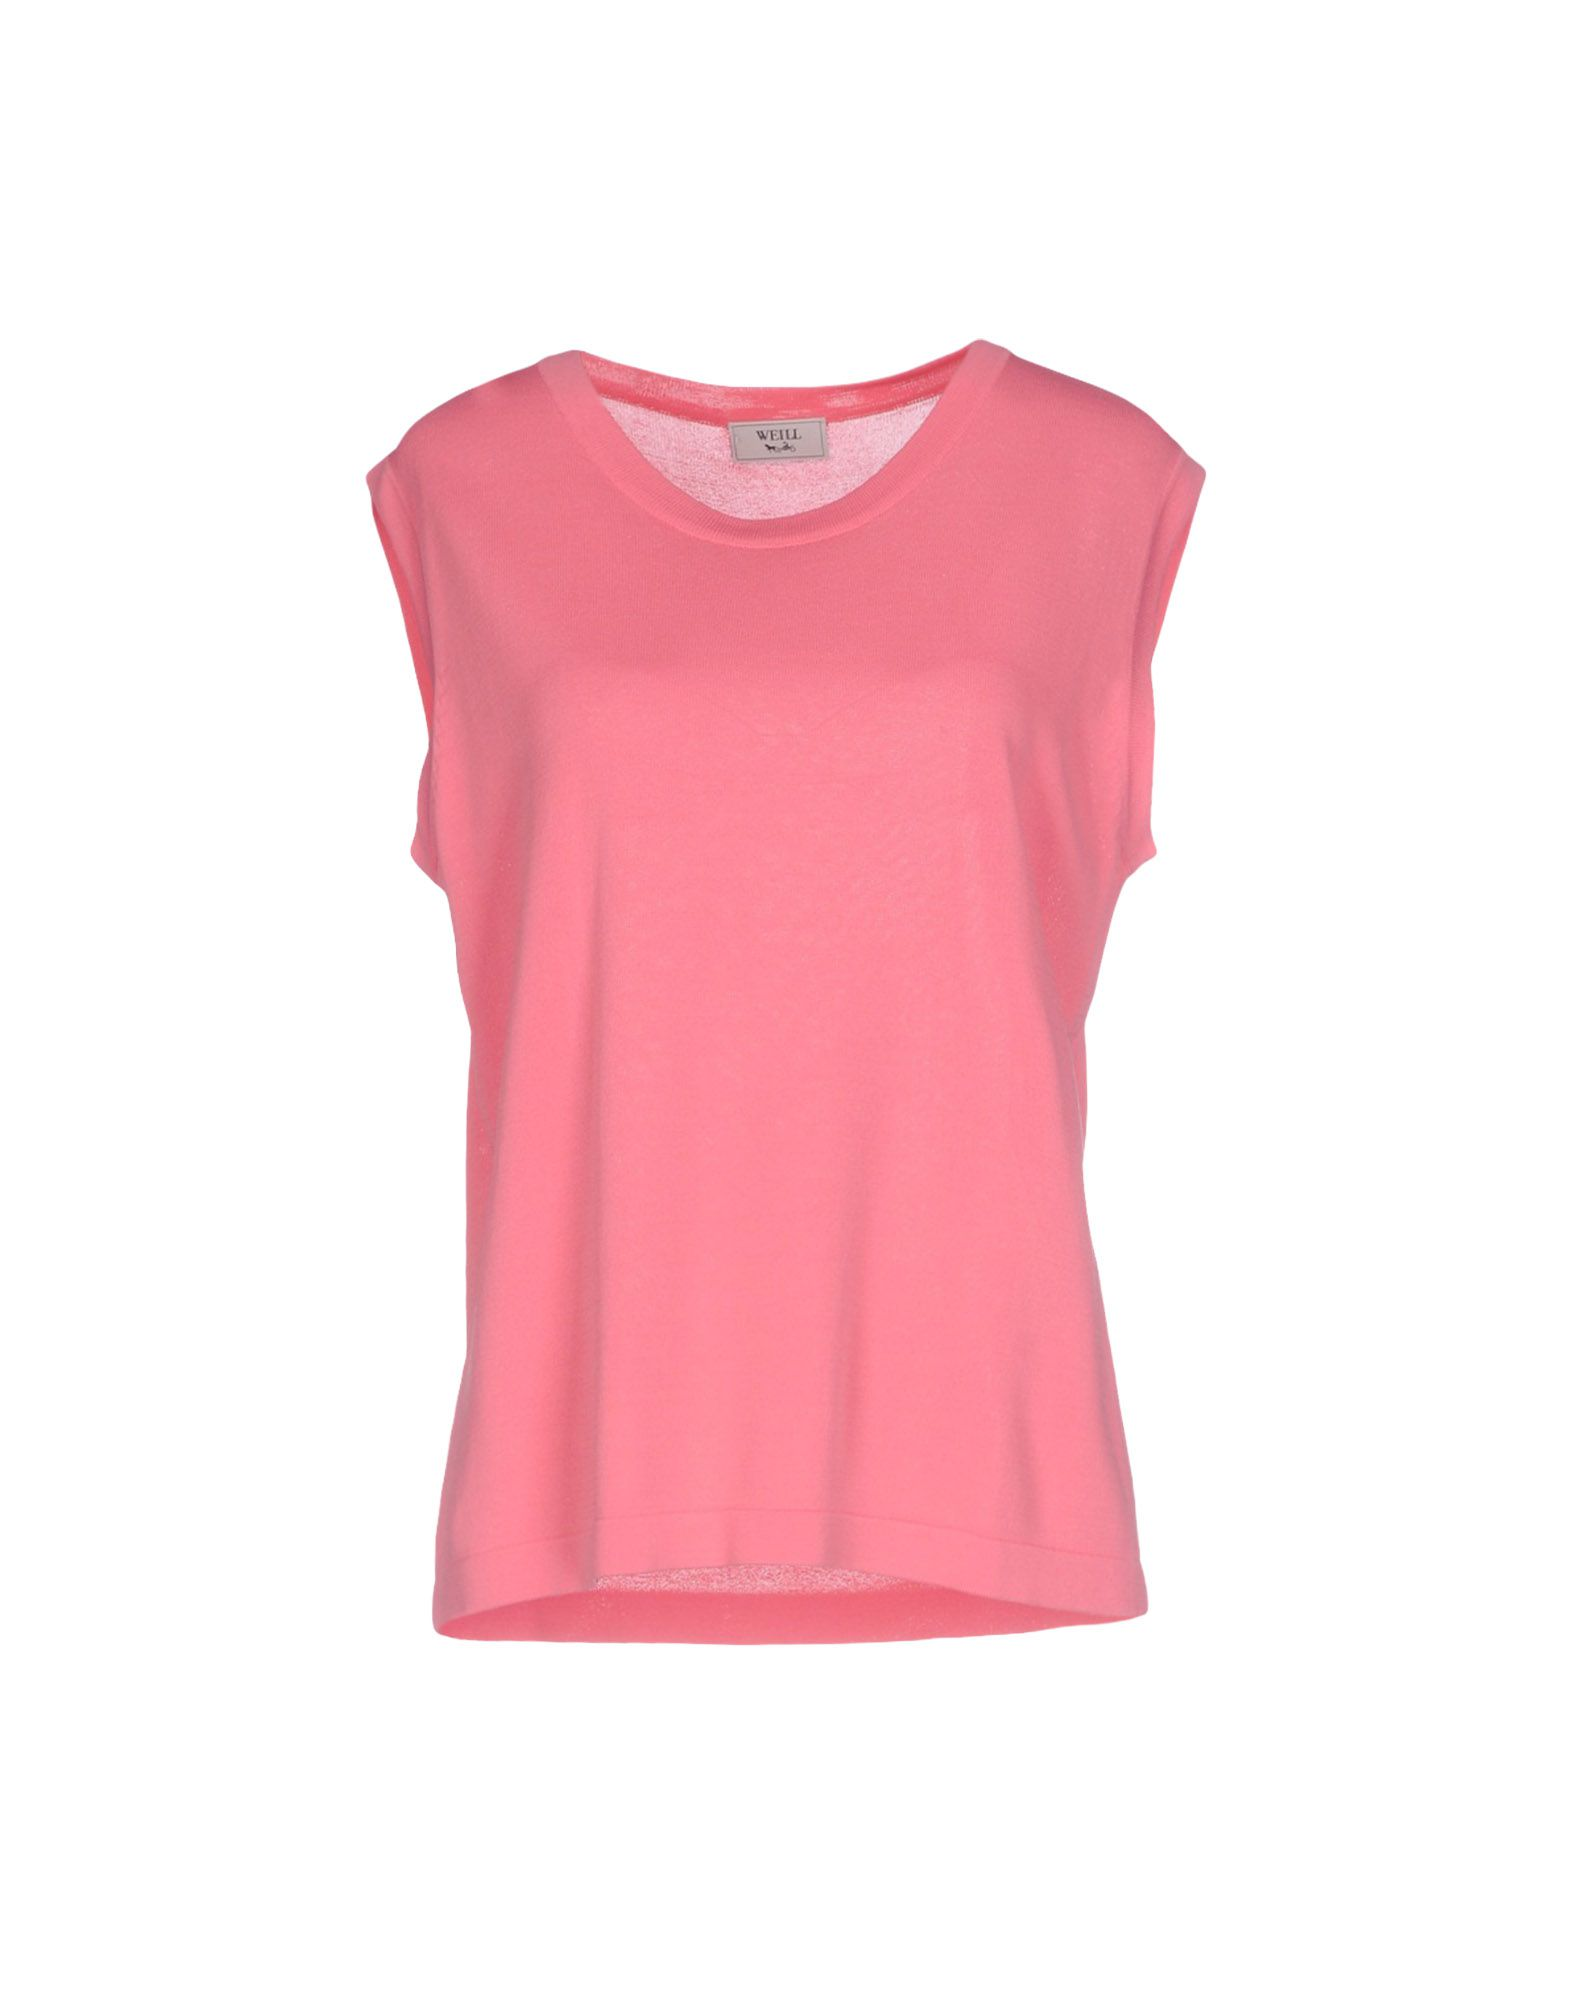 WEILL Sweater in Pink